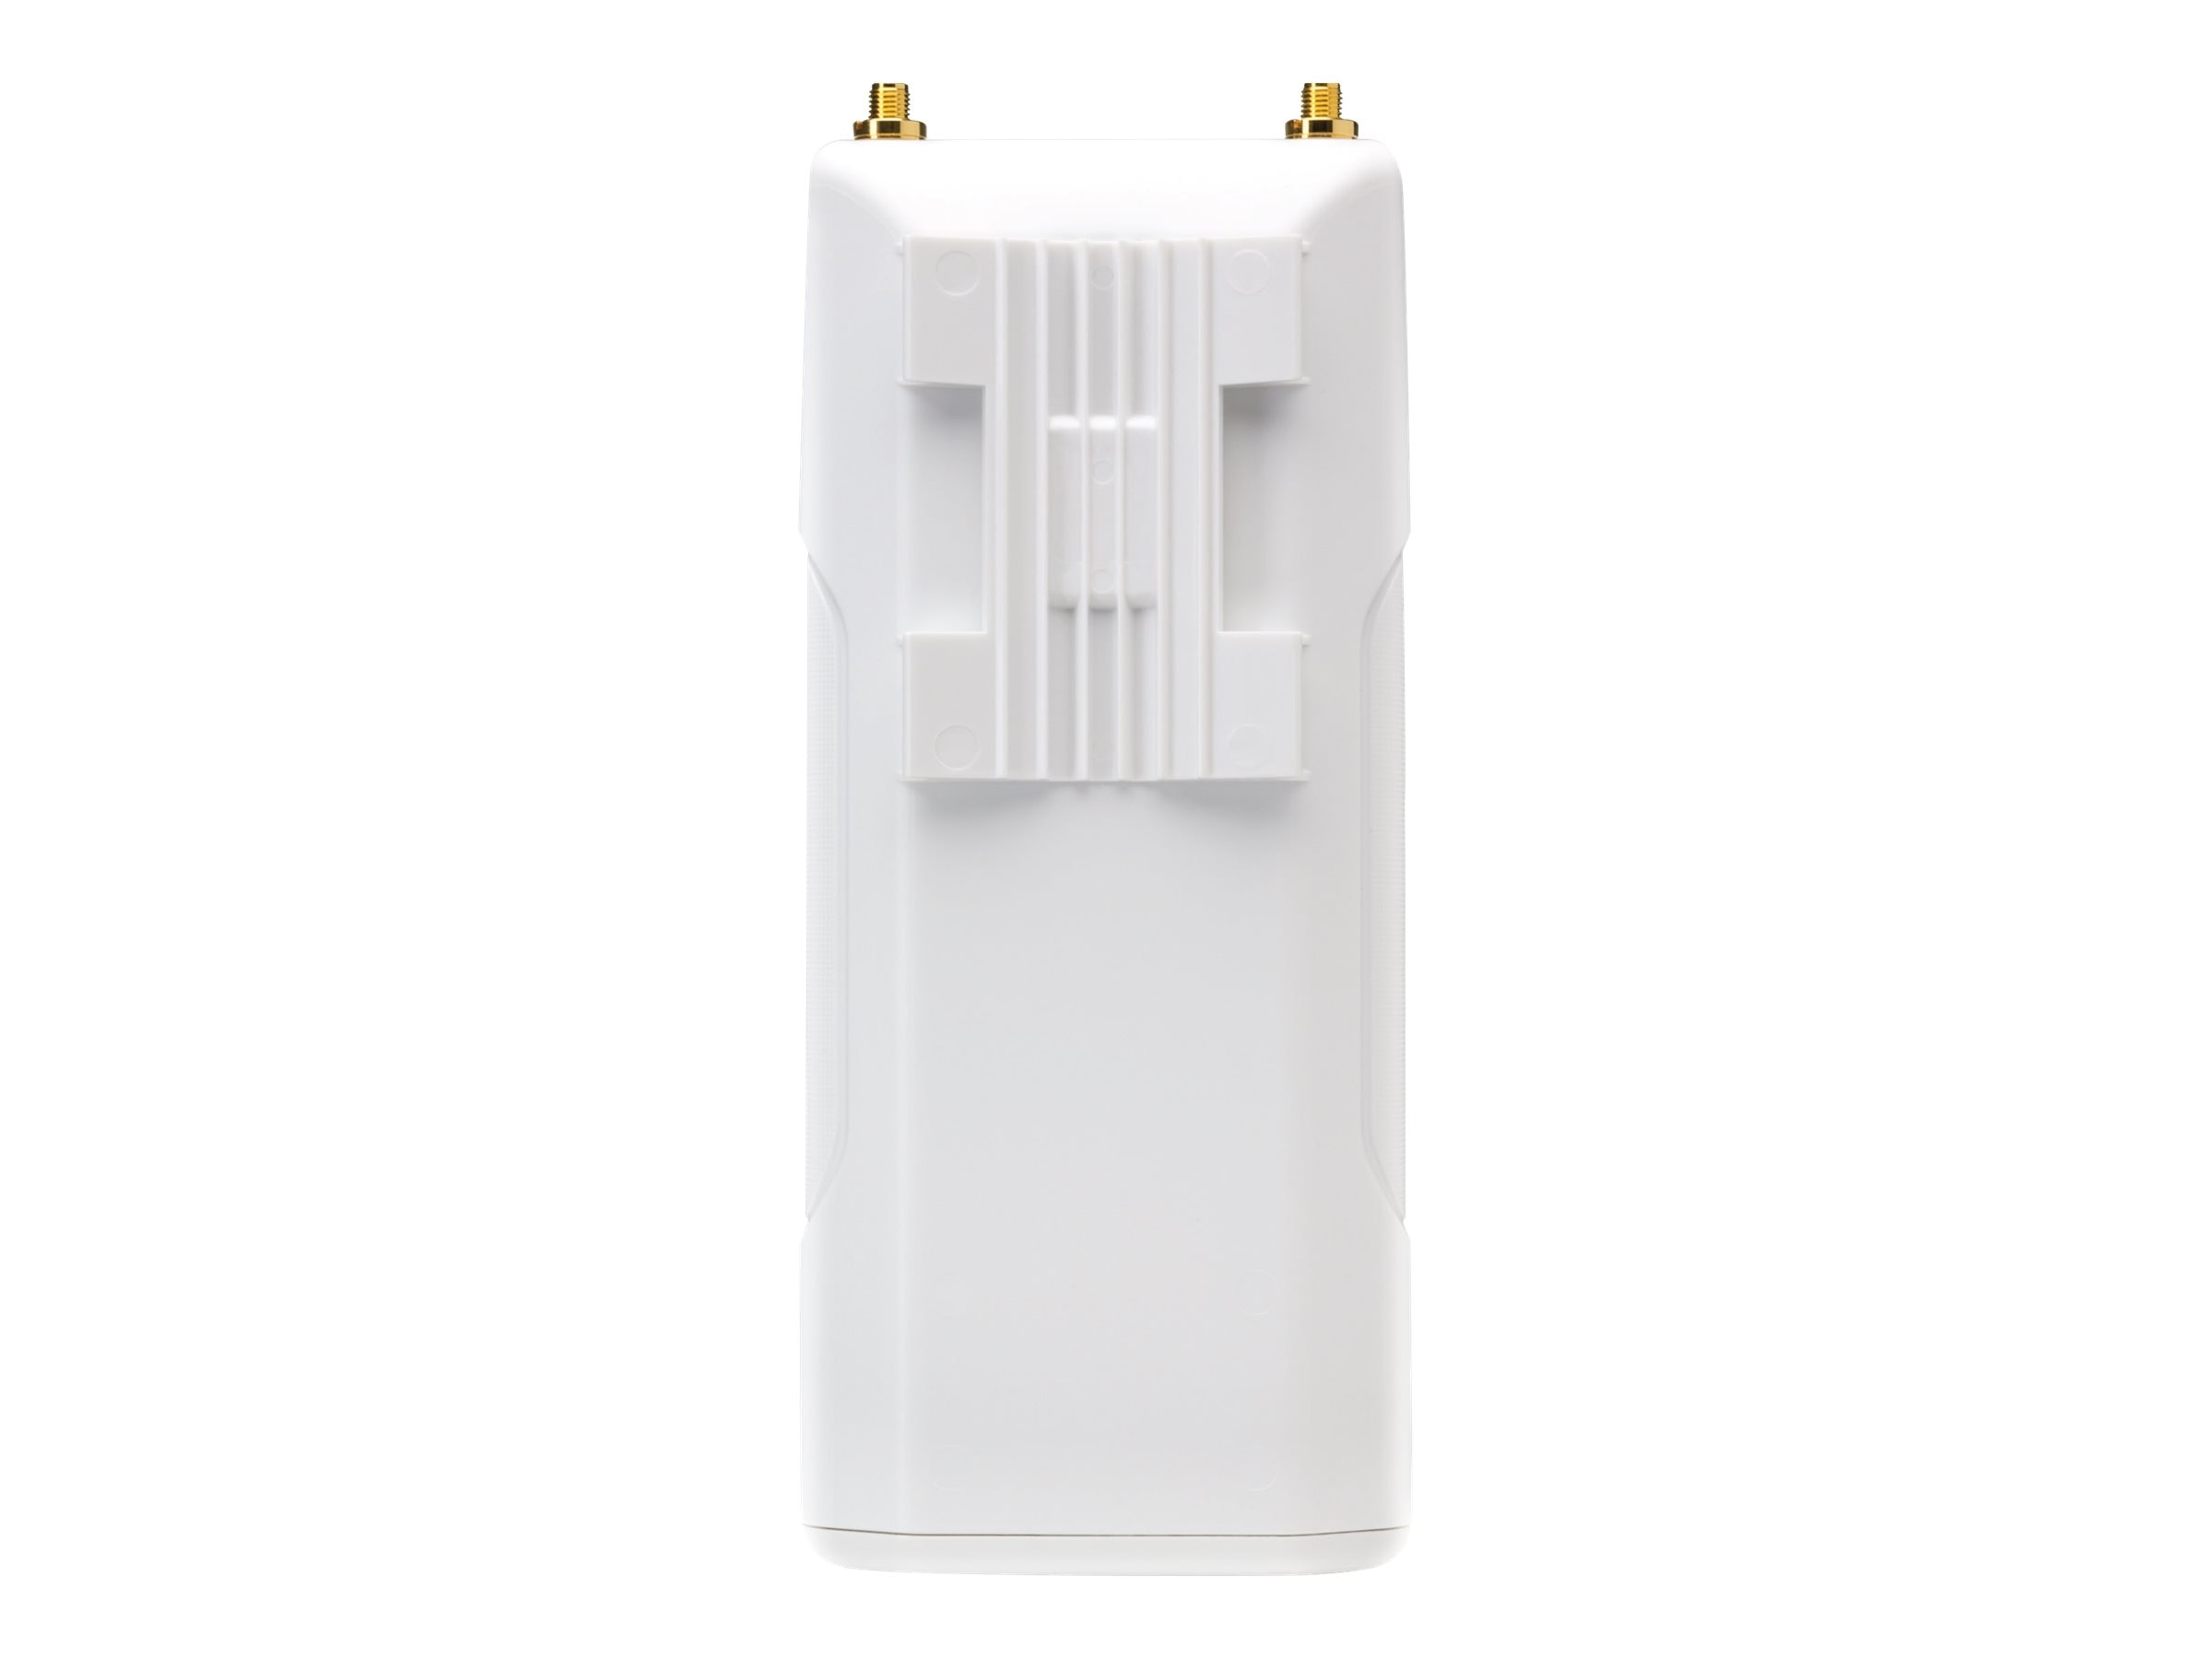 Ubiquiti Rocket ac R5AC-PTP - Wireless Access Point, R5AC-PTP